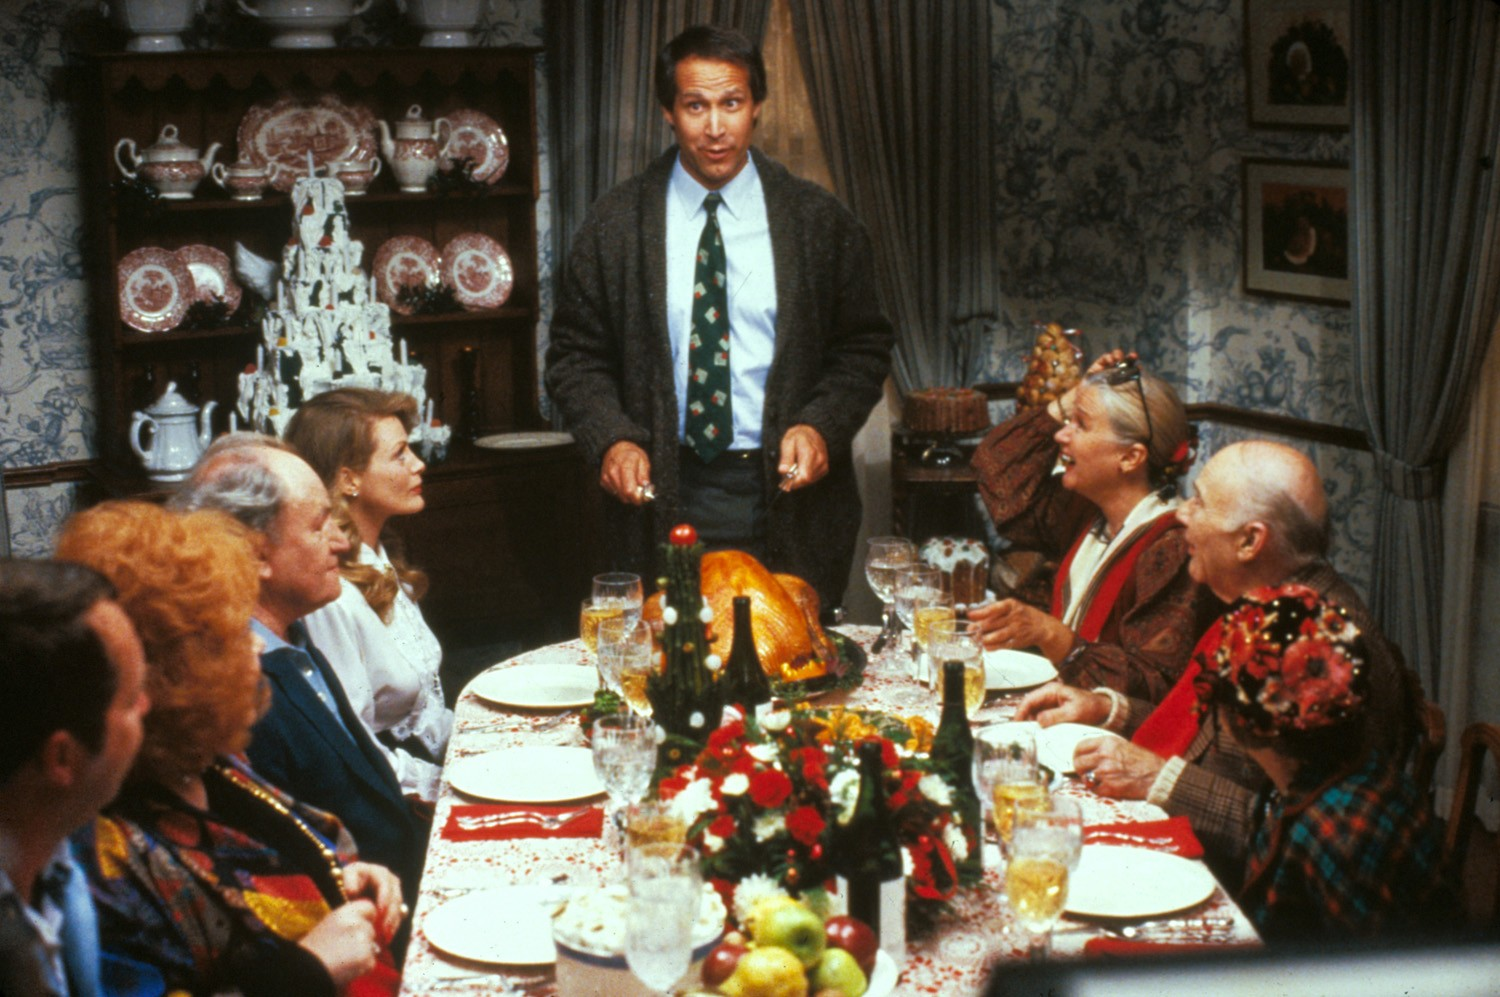 an analysis of national lampoons vacation National lampoon's christmas vacation uses a number of different comedic methods in order to strike viewers as funny, but two that are prominent throughout are the slapstick and farce traditions slapstick is a reoccurring theme, as clark often gets brutalized through self-inflicted means.